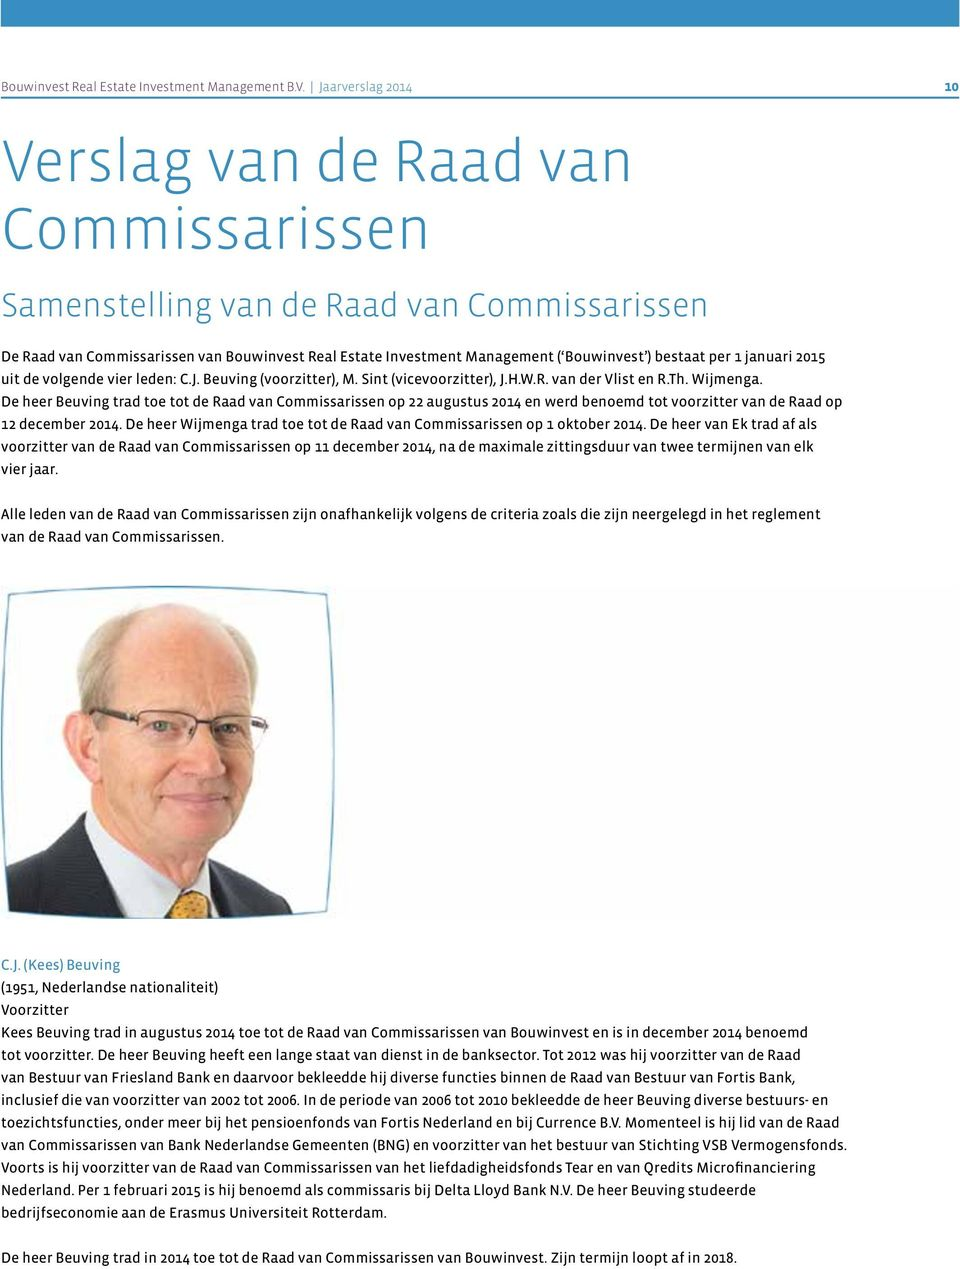 Commissarissen Composition of the Supervisory Board De Raad van Commissarissen van Bouwinvest Real Estate Investment Management ( Bouwinvest ) bestaat per 1 januari 2015 uit de volgende vier leden: C.